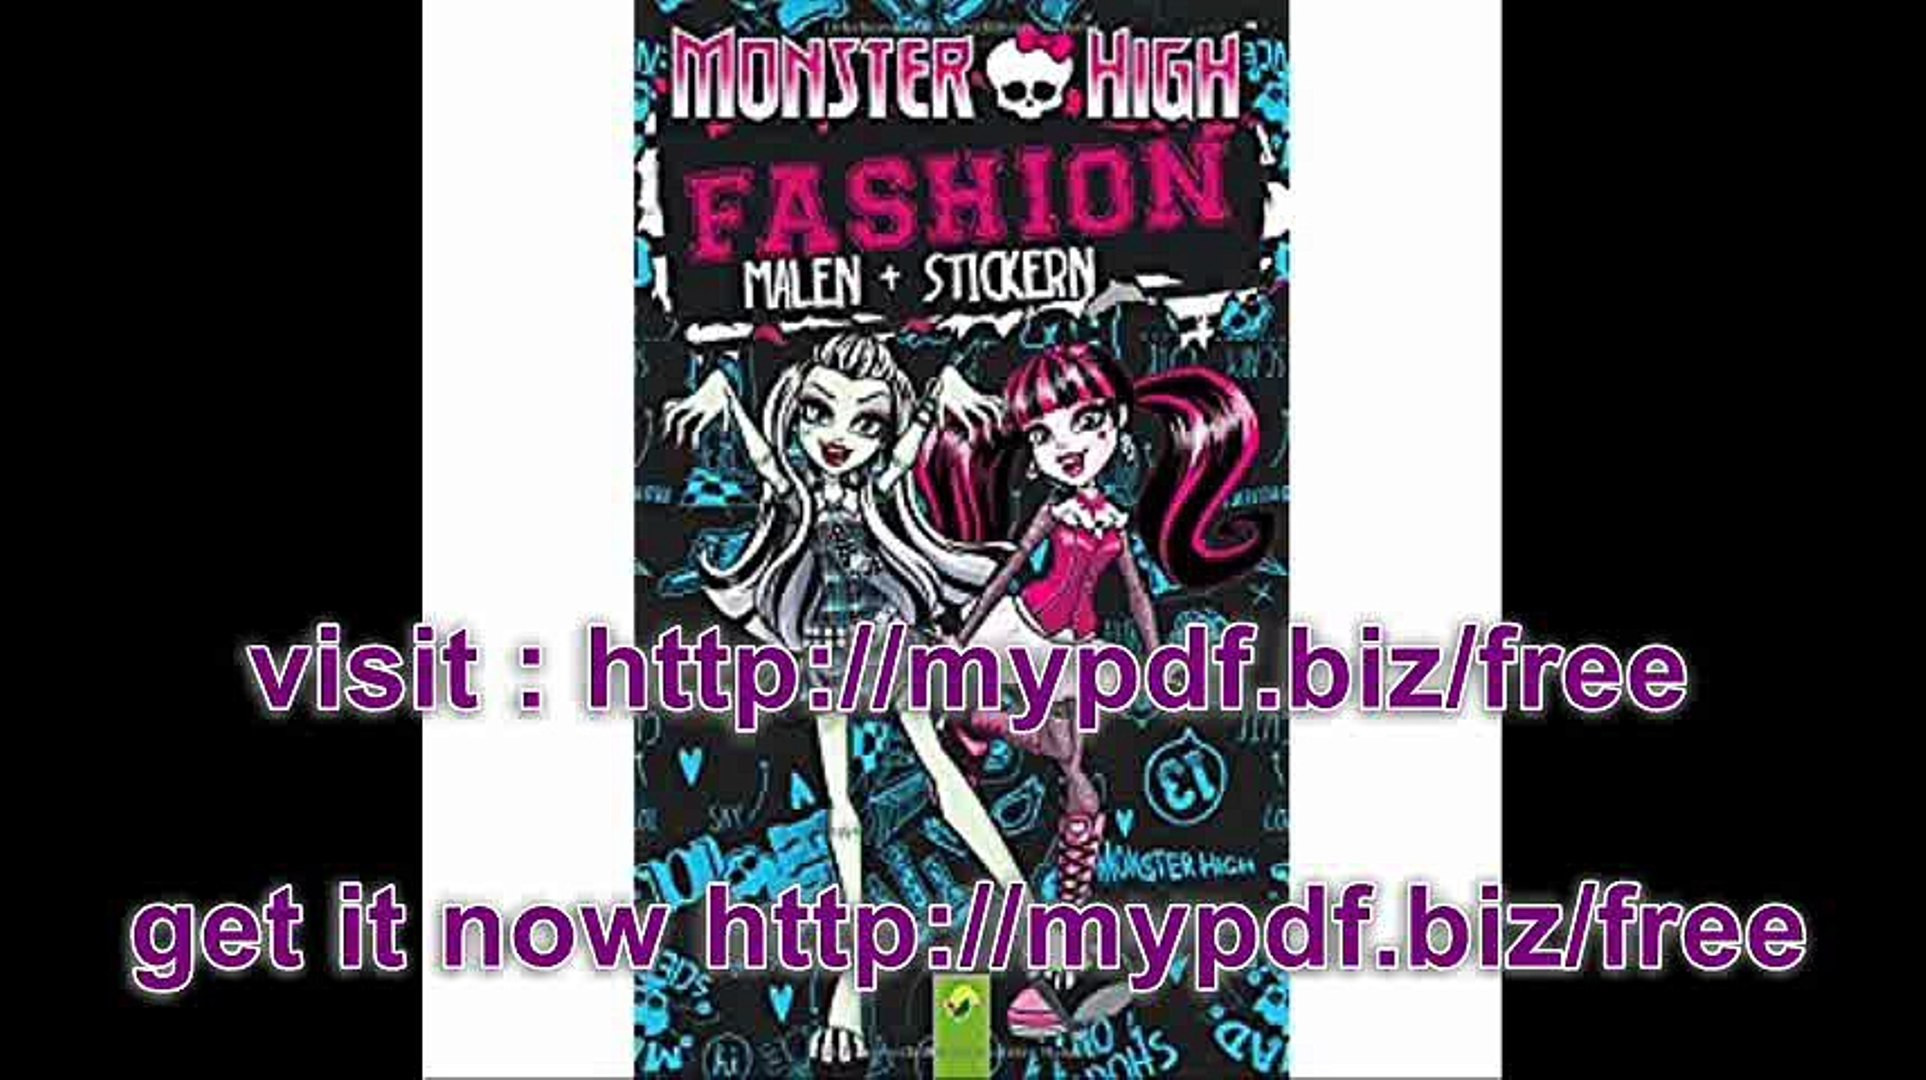 Monster High Ausmalbilder Das Beste Von Monster High Ausmalbilder Clawdeen Luxus 35 Ausmalbilder Monster Fotografieren